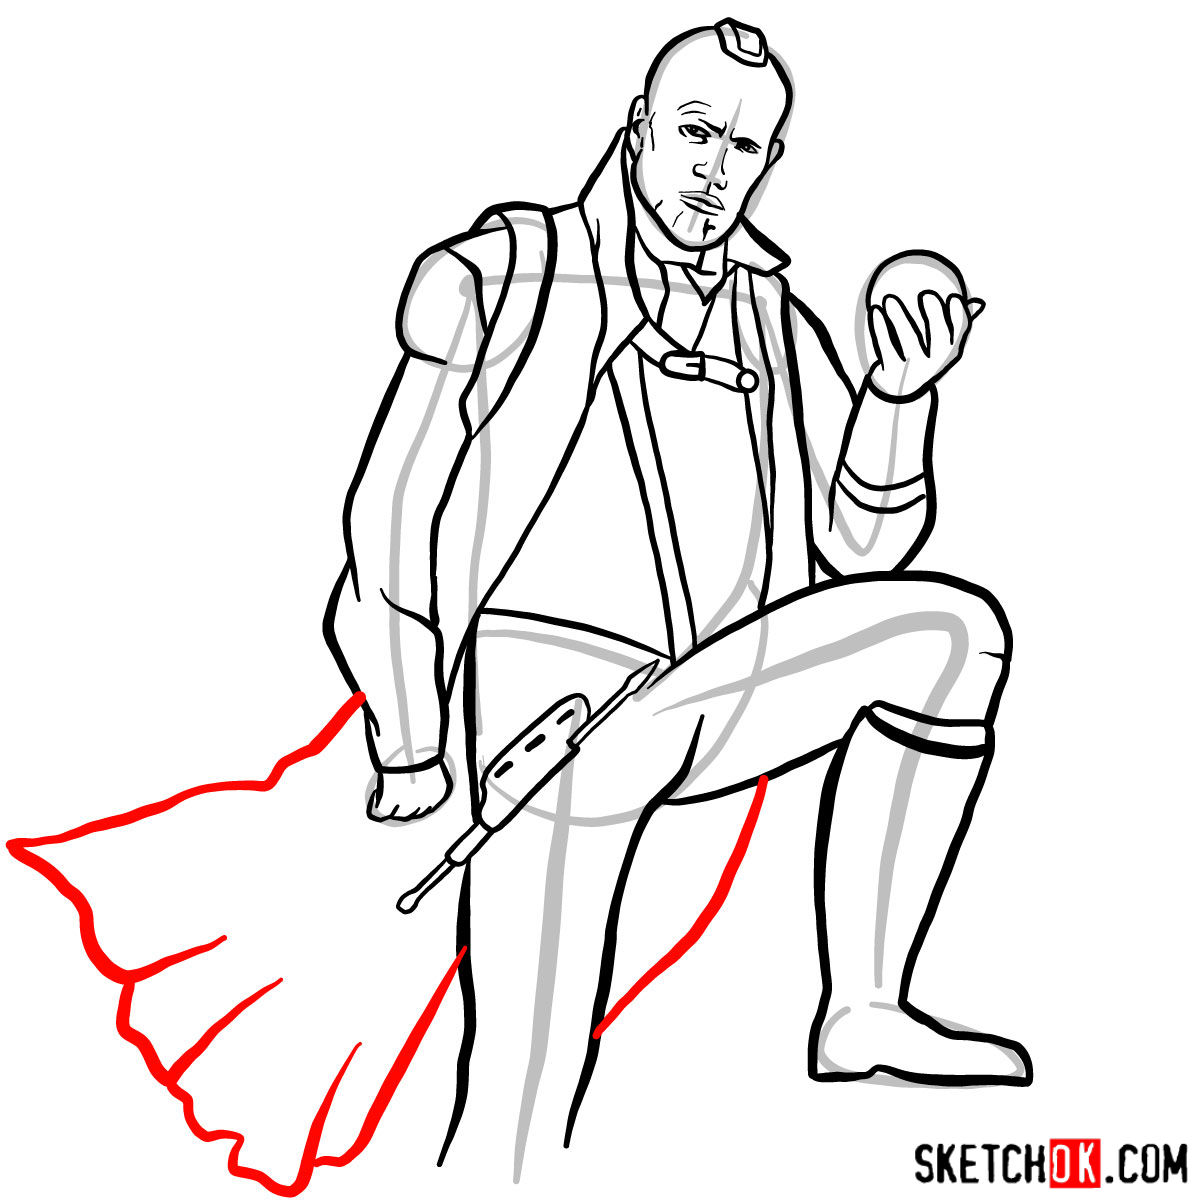 How to draw Yondu Udonta from Guardians of the Galaxy - step 13